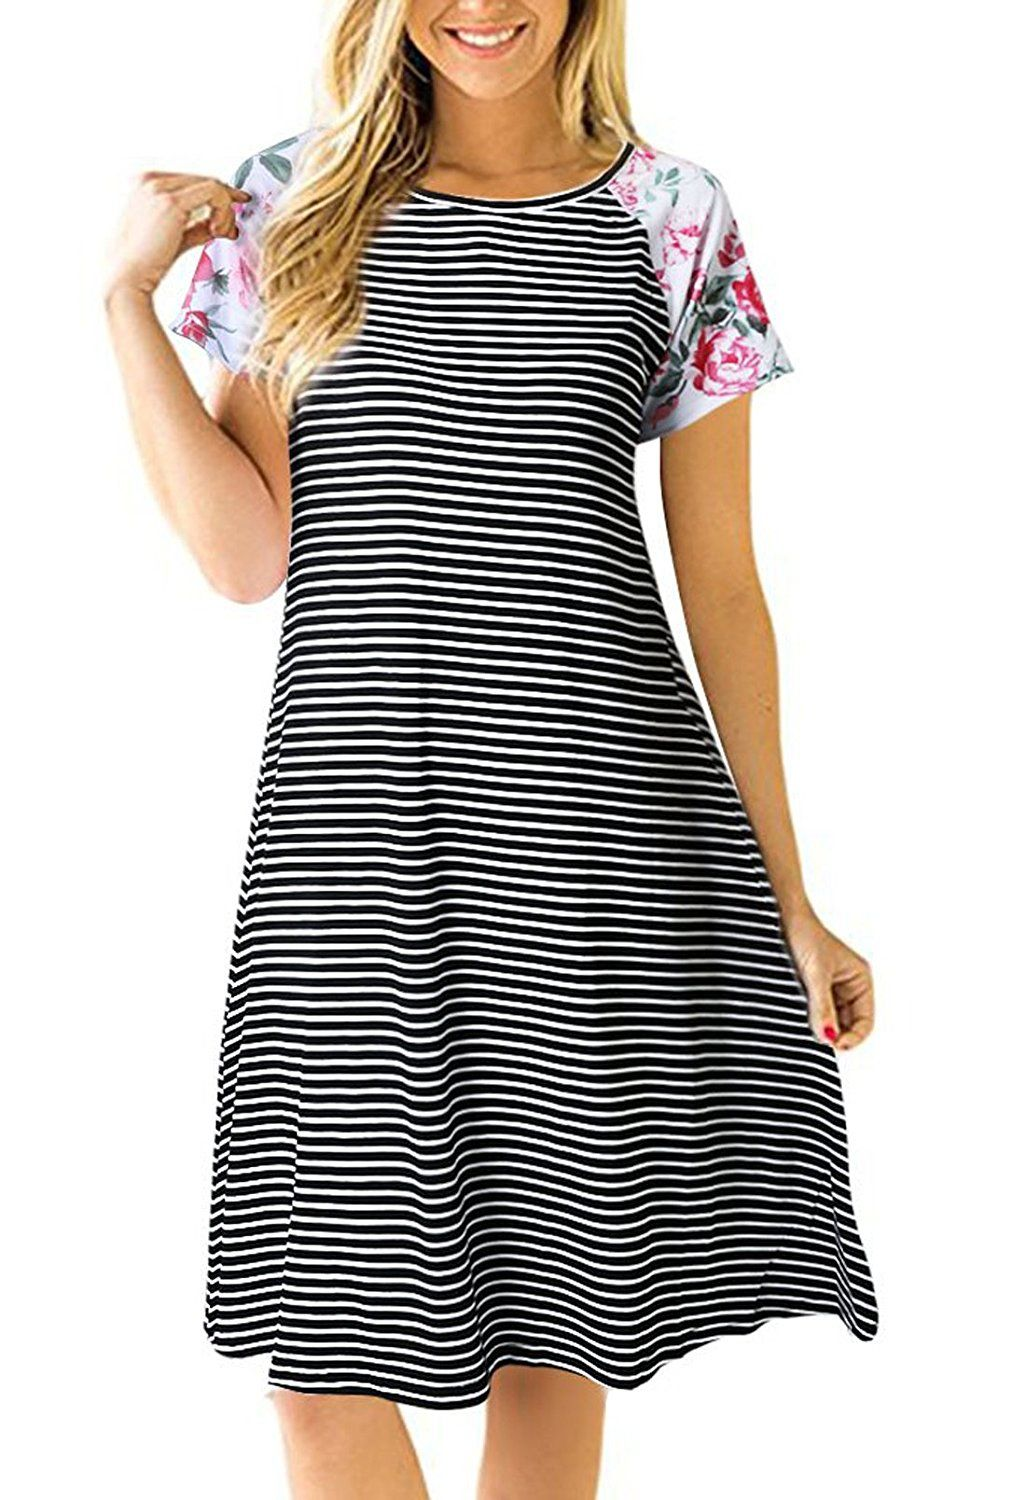 Uideazone women striped floral short sleeve tshirt dress loose a